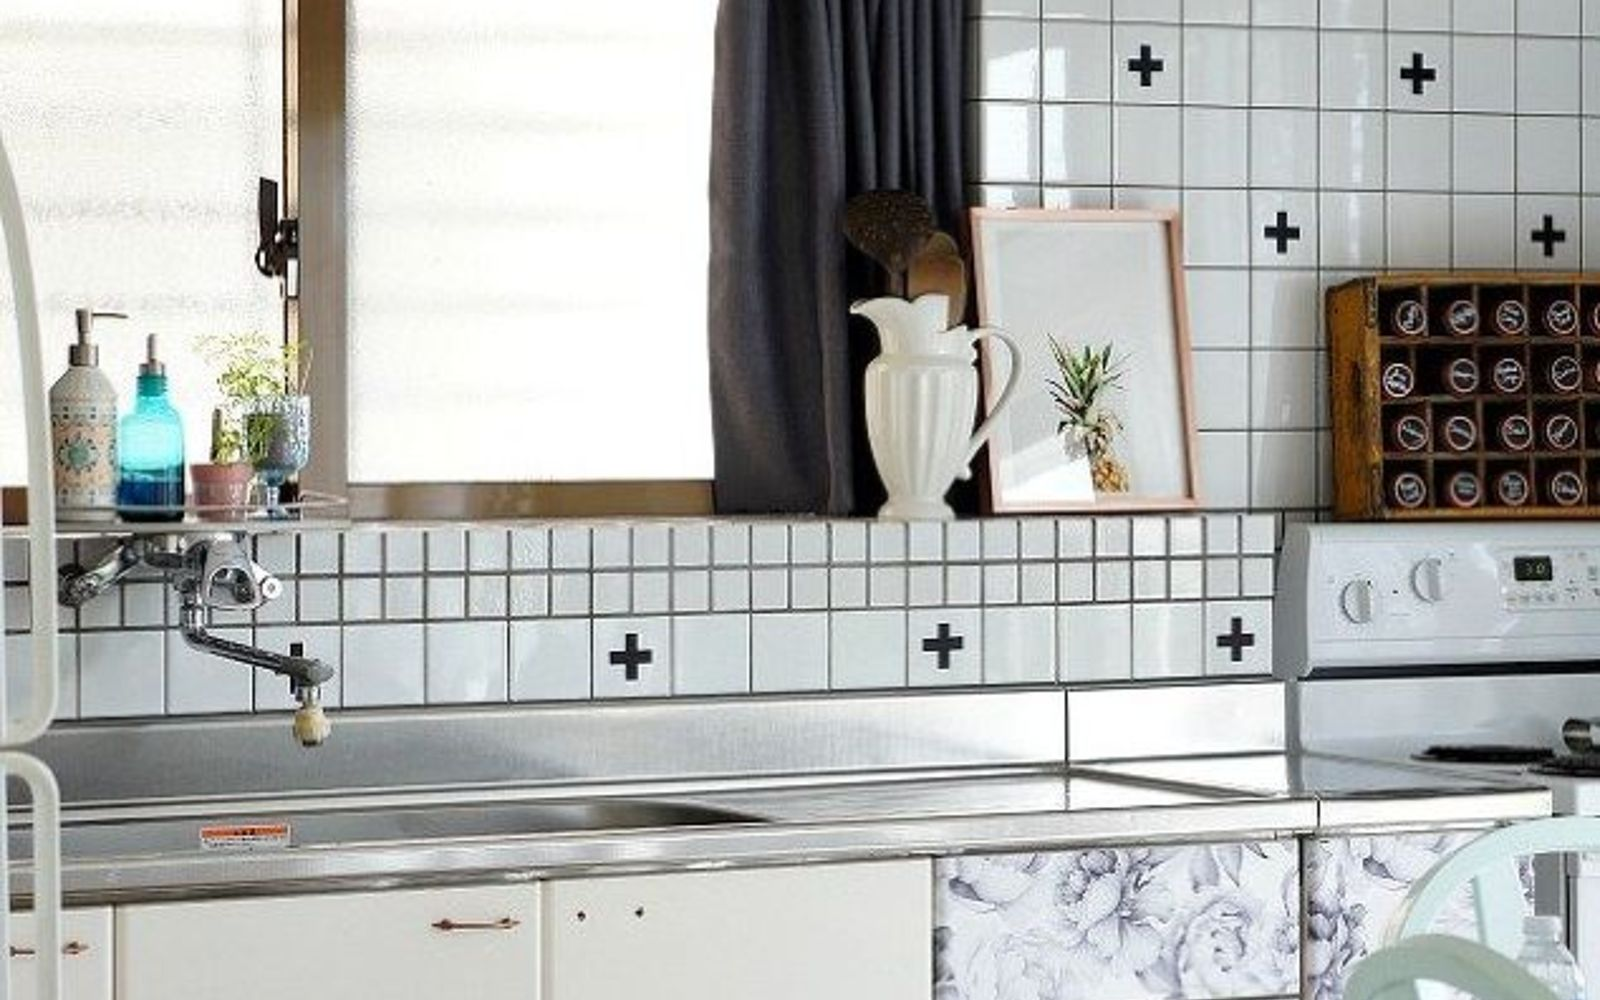 s 20 ways you never thought of using wallpaper, wall decor, Give you renter white cabinets a new look